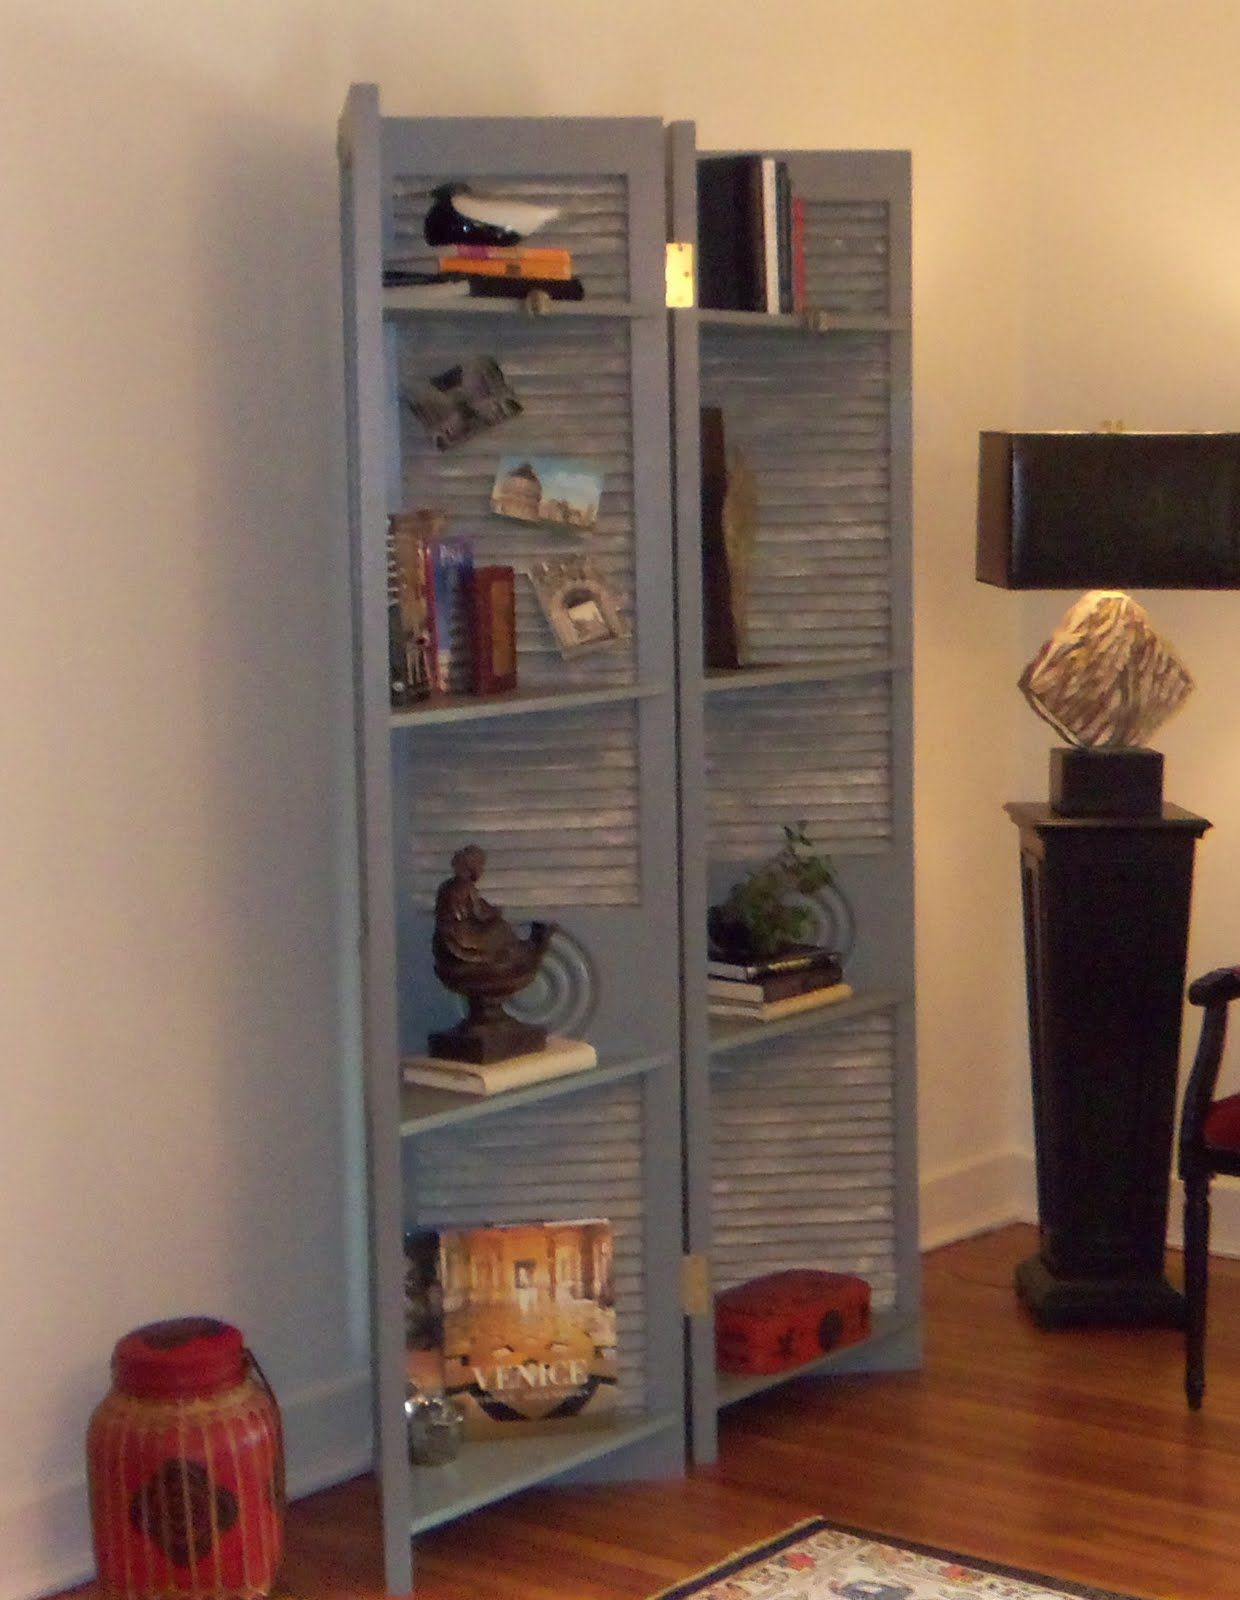 rekaced designs: louvered doors disguised as a screen/shelving